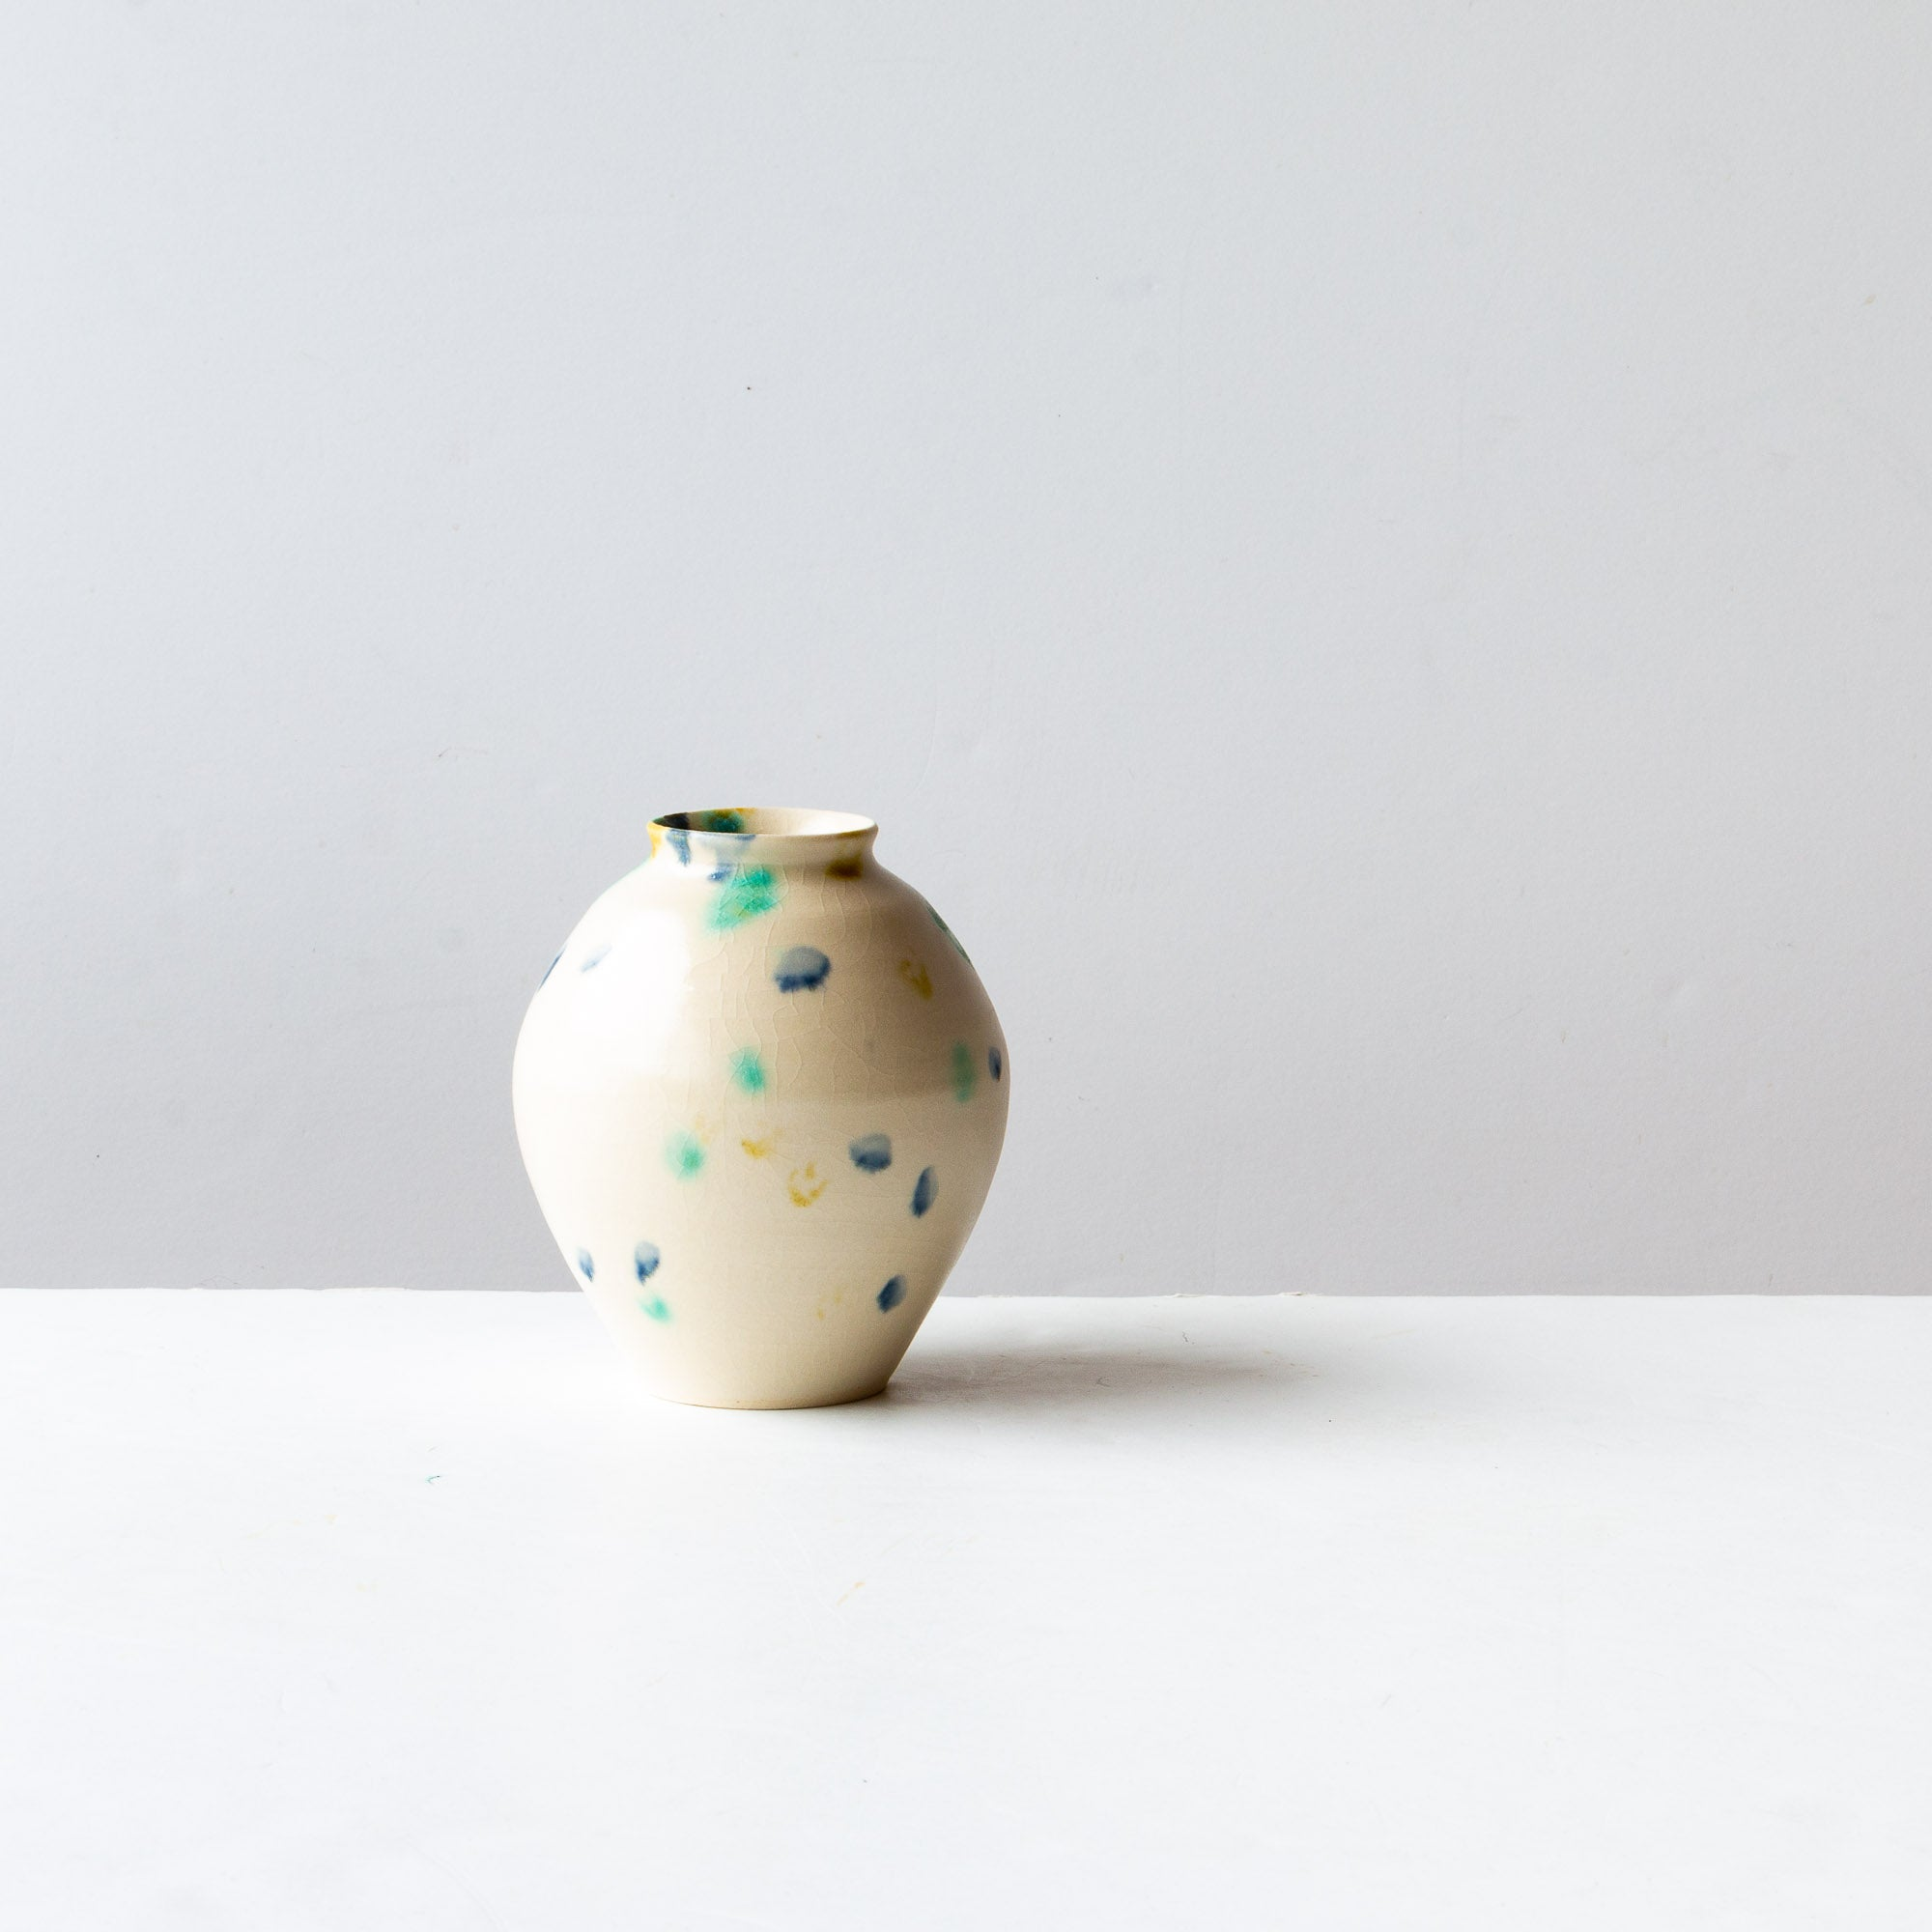 Hanabira - Handmade Small Ceramic Vase - Sold by Chic & Basta